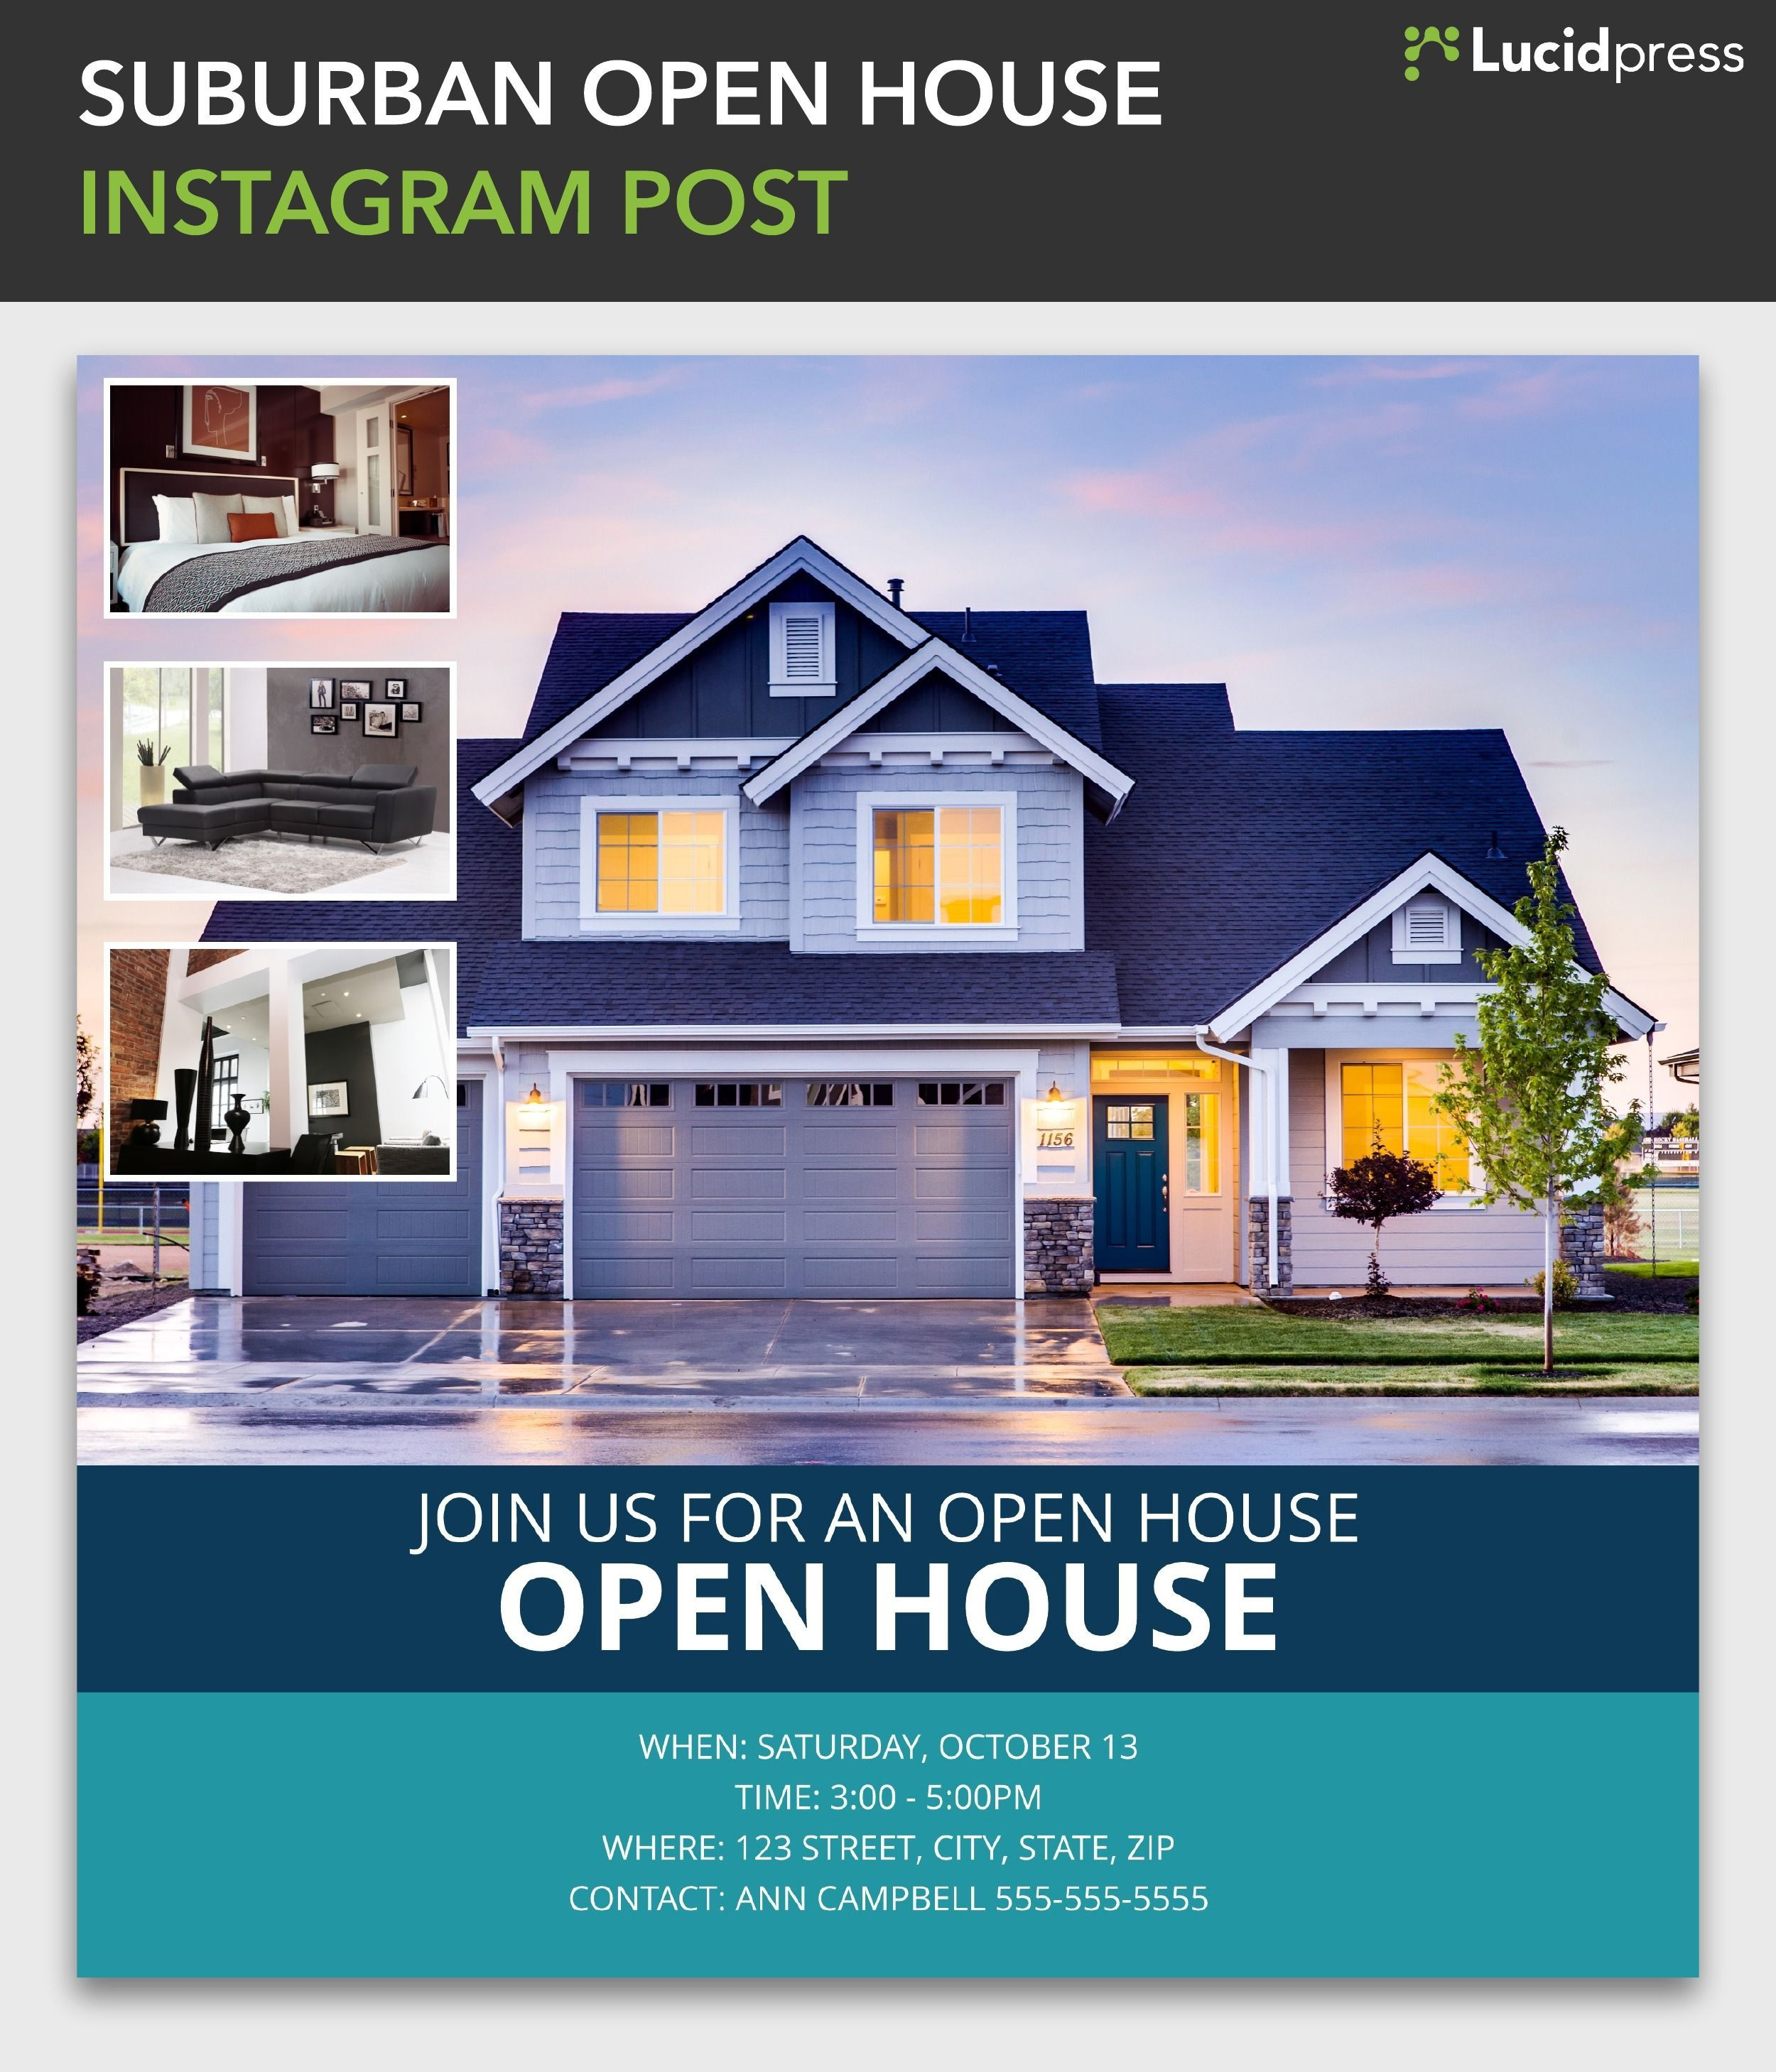 000 Dreaded Open House Flyer Template Word High Resolution  Free MicrosoftFull